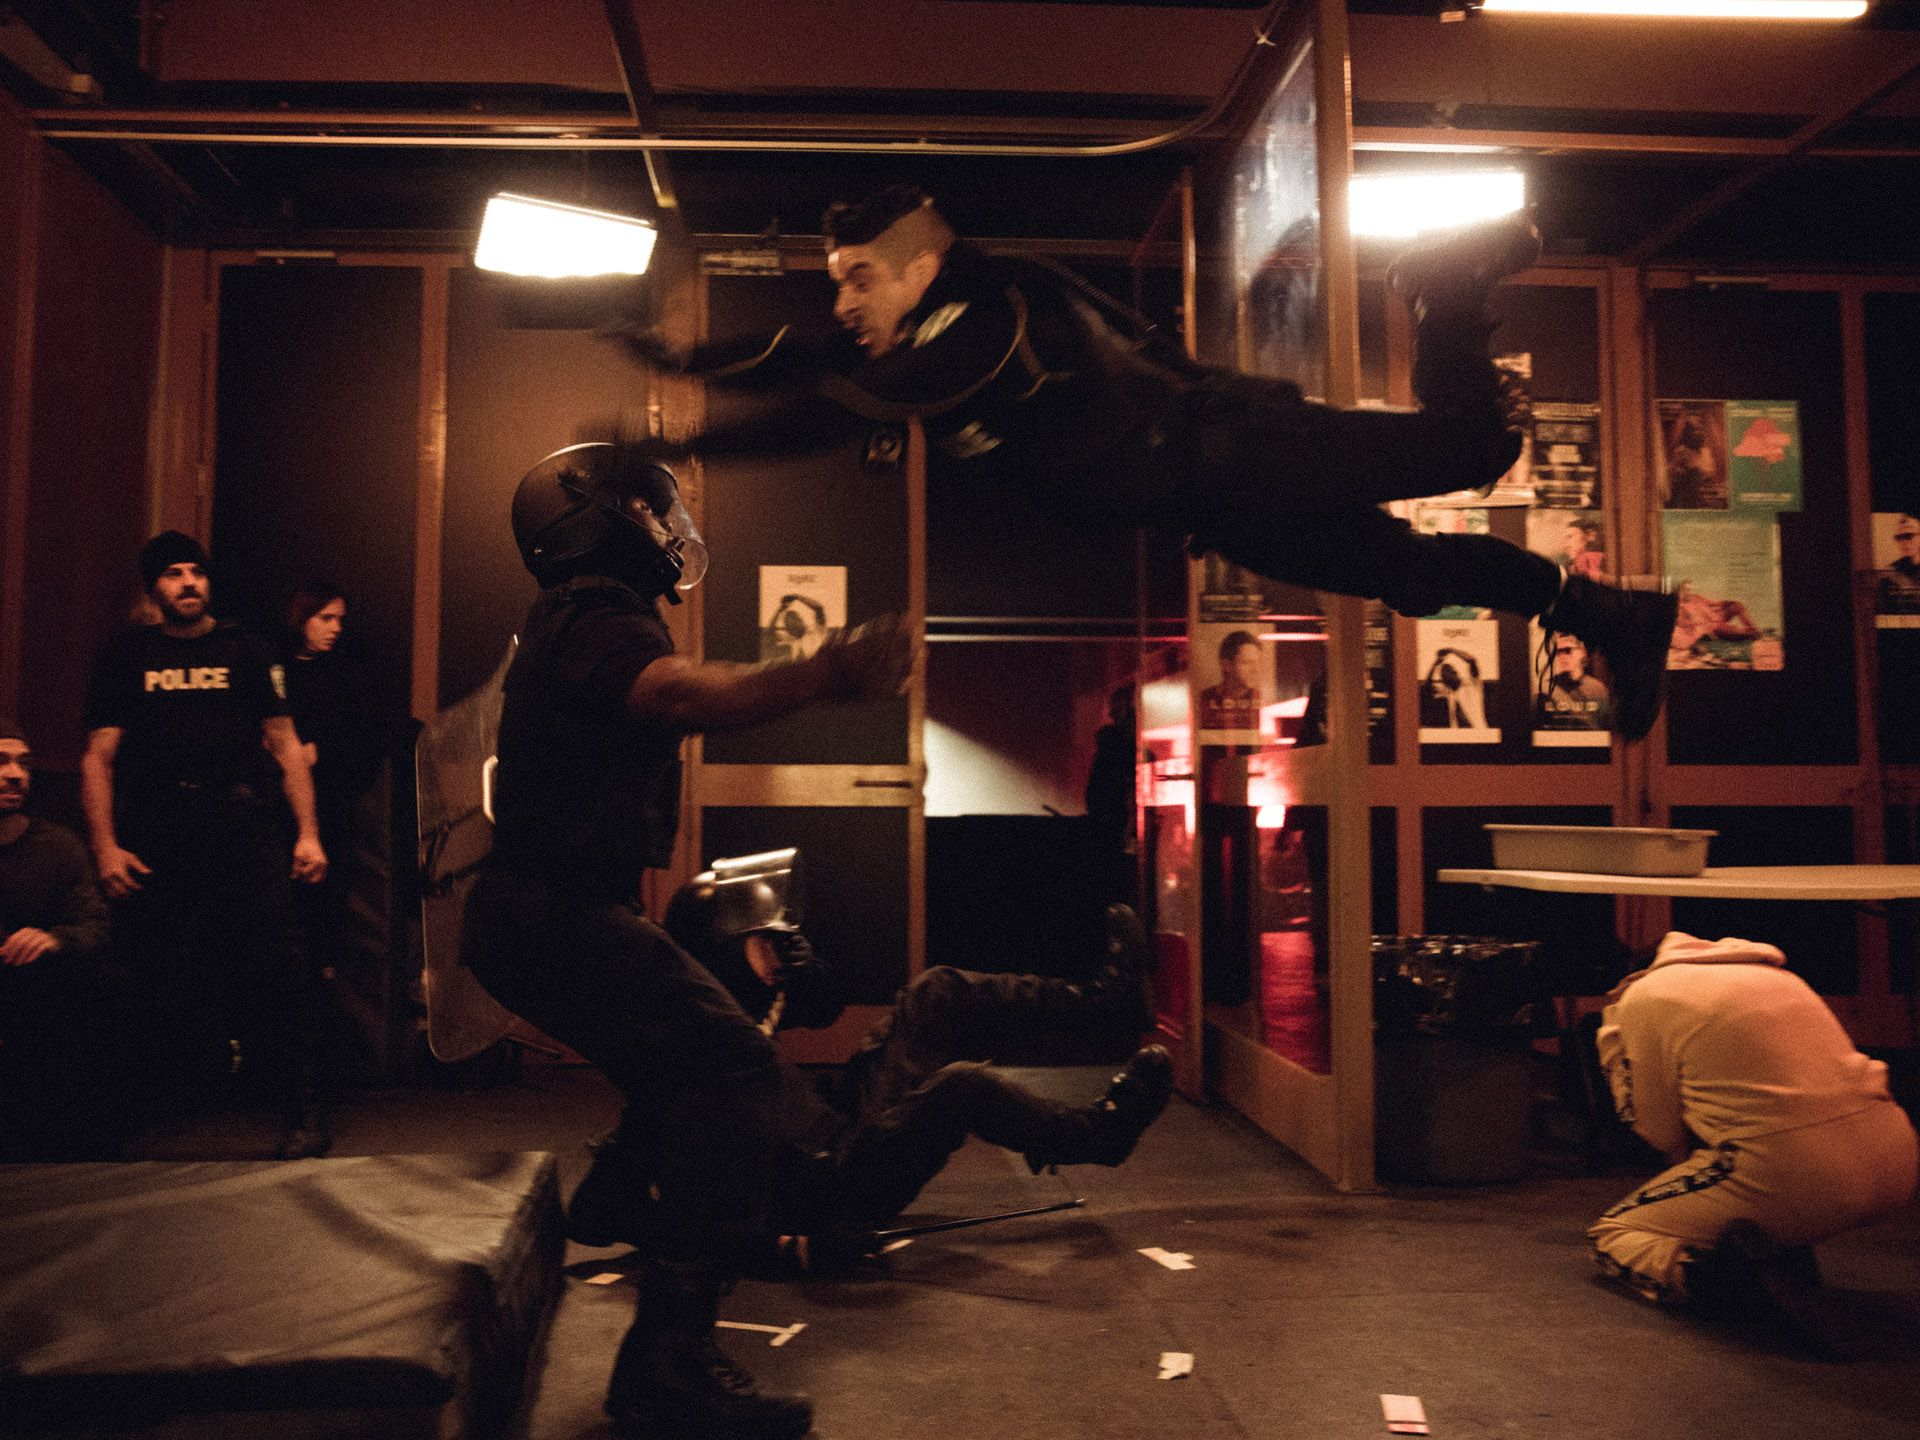 actor Hugolin Chevrette-Landesque dressed as cop jumping into the air onto another actor with safety mat behind them in behind the scenes of TV series La Loi C'est La Loi filmed by Les Gamins for TV5 Unis